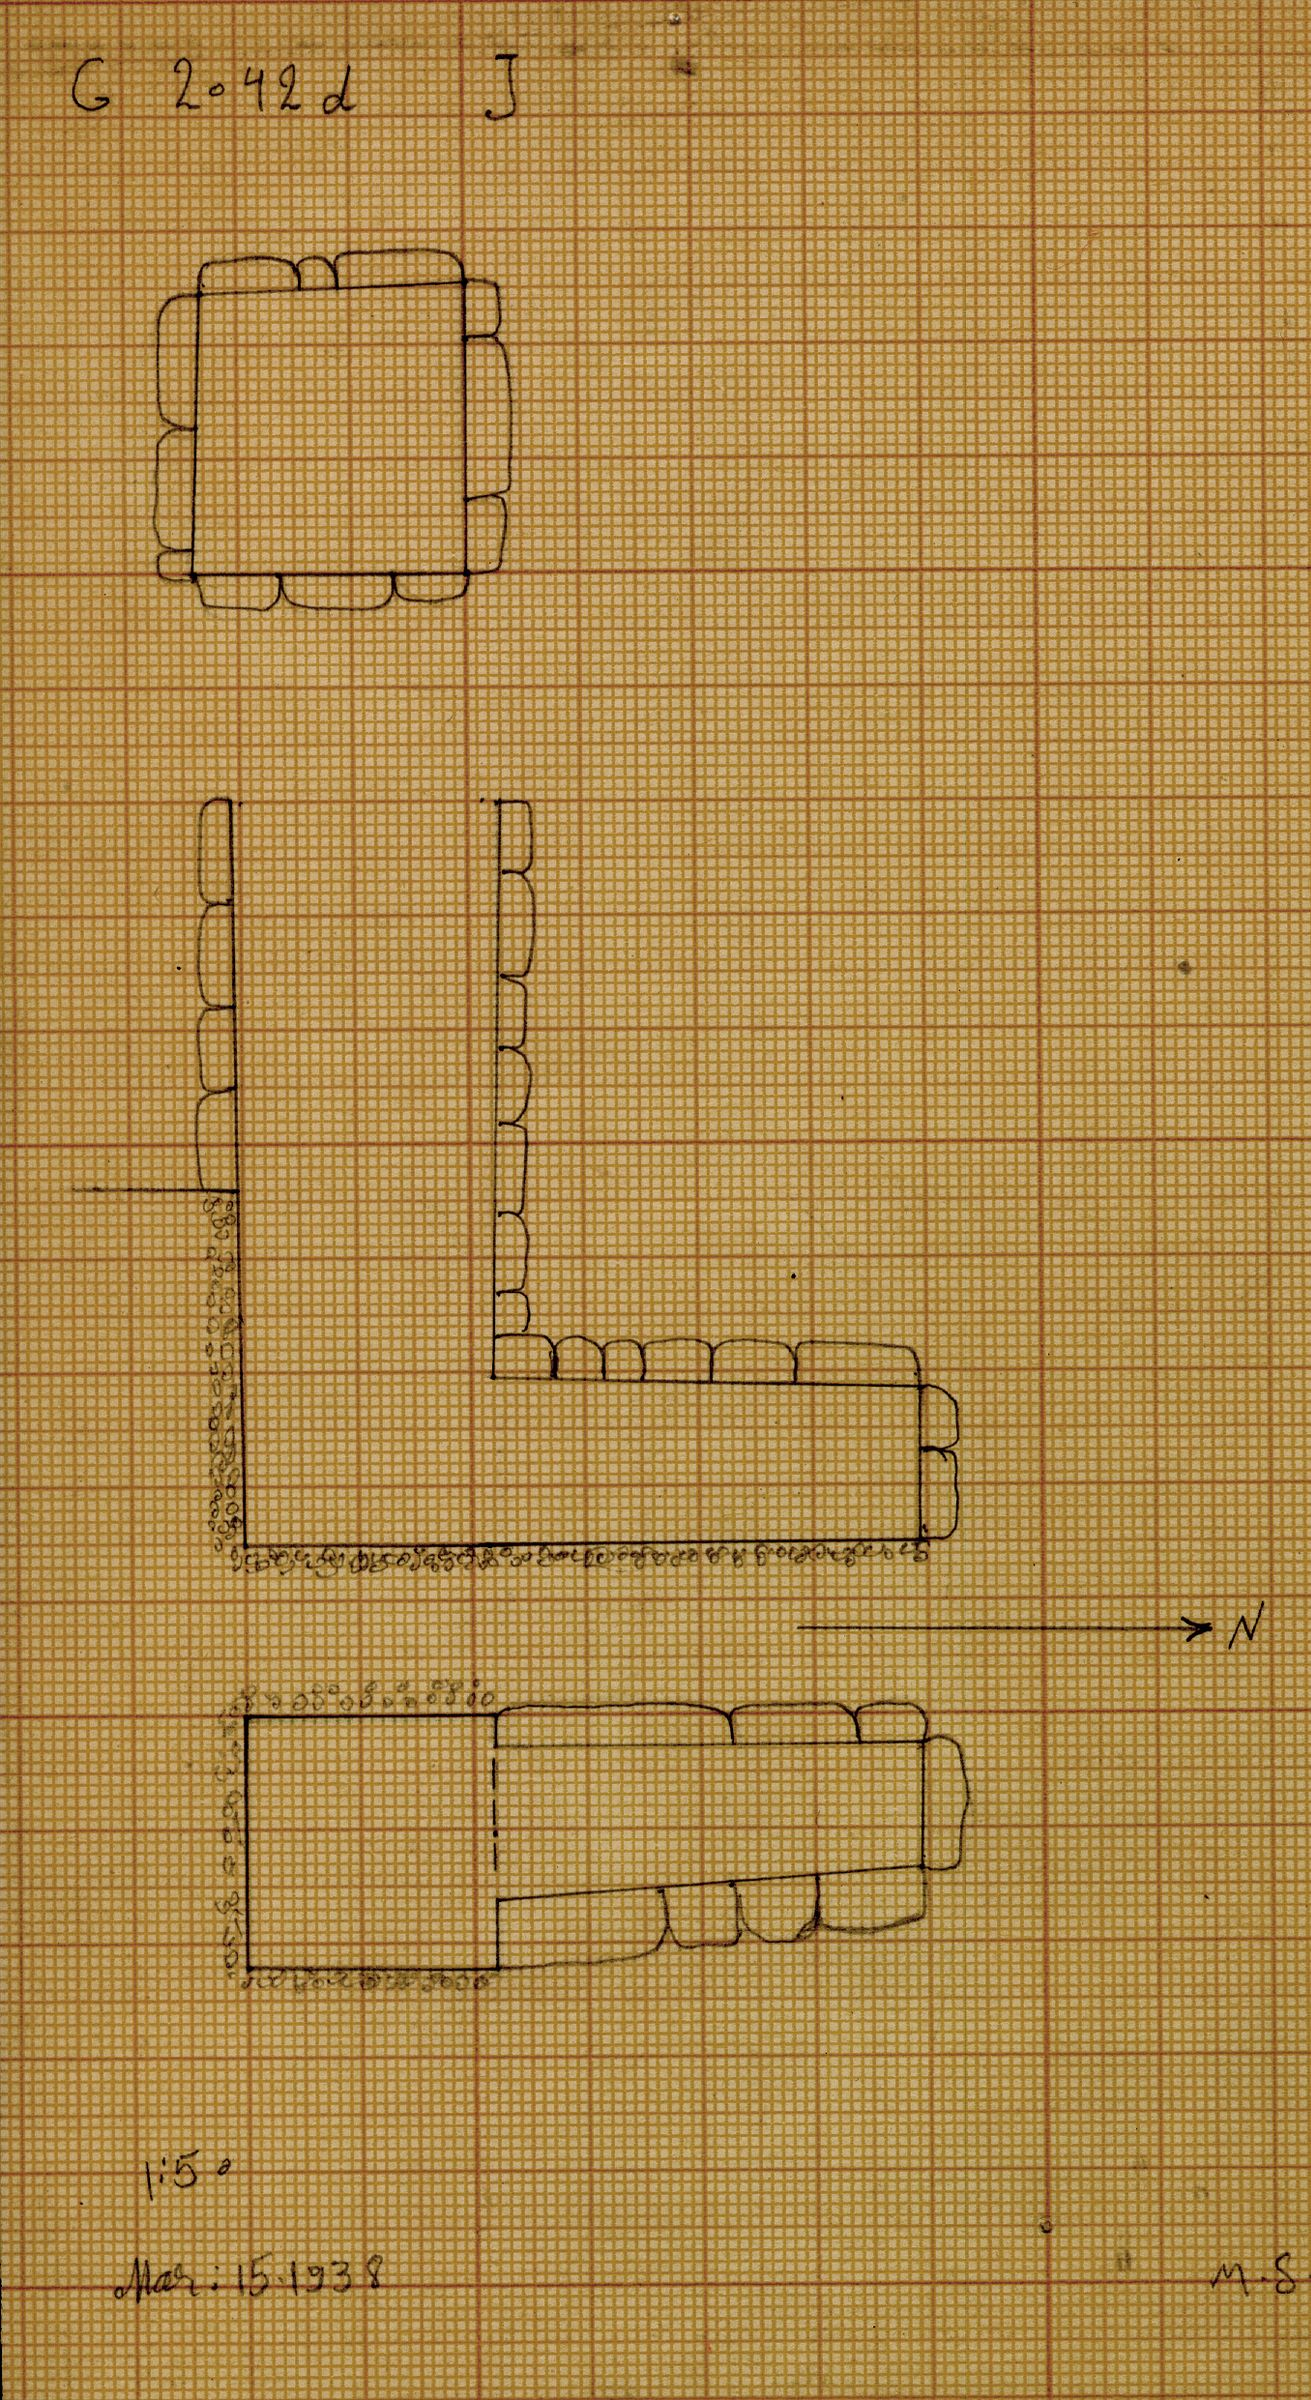 Maps and plans: G 2042d, Shaft J